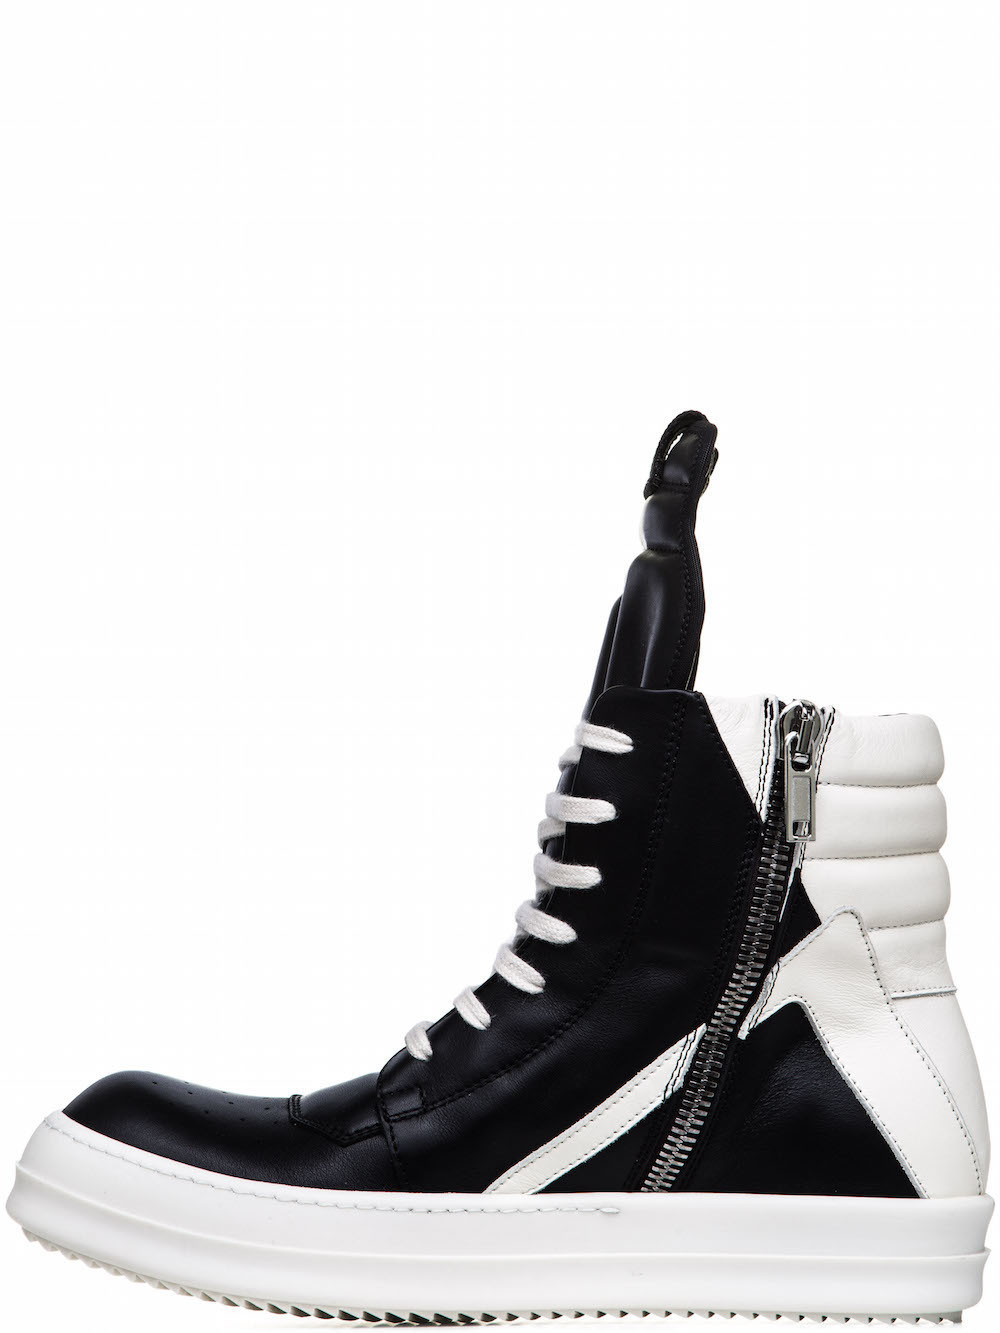 RICK OWENS GEOBASKETS IN BLACK CALF LEATHER